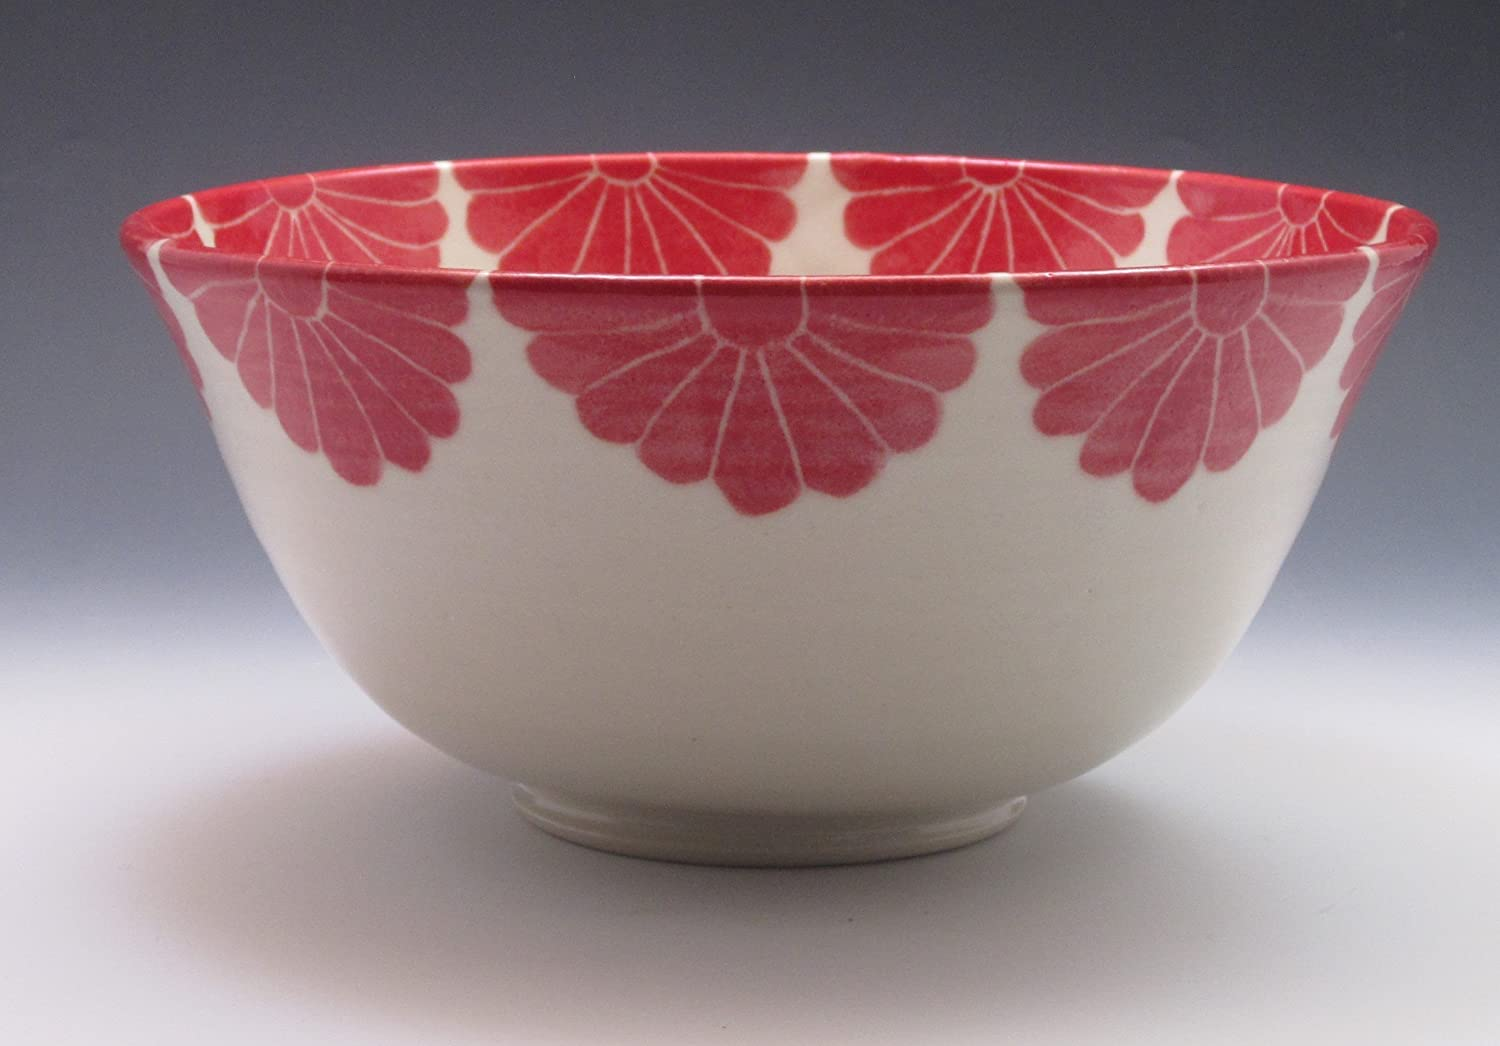 Porcelain Serving Bowl, hand thrown and hand painted in red flower design